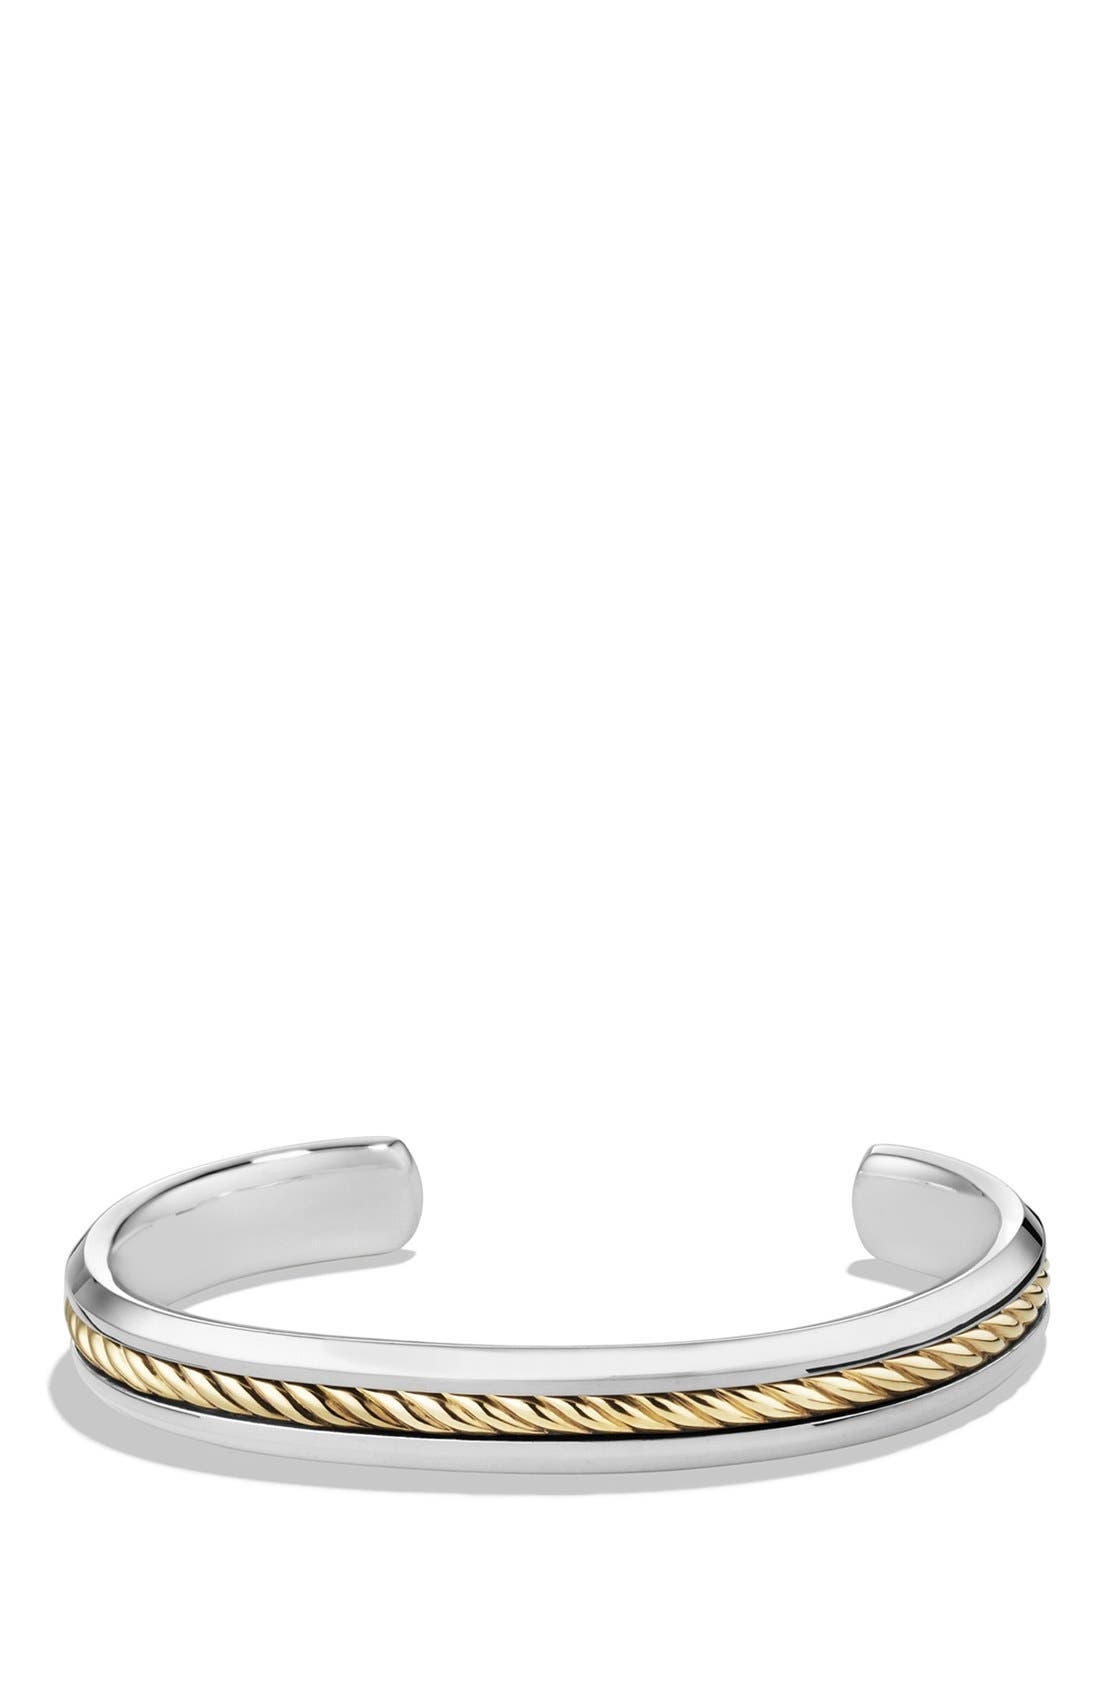 DAVID YURMAN Cable Classics Cuff Bracelet with Gold